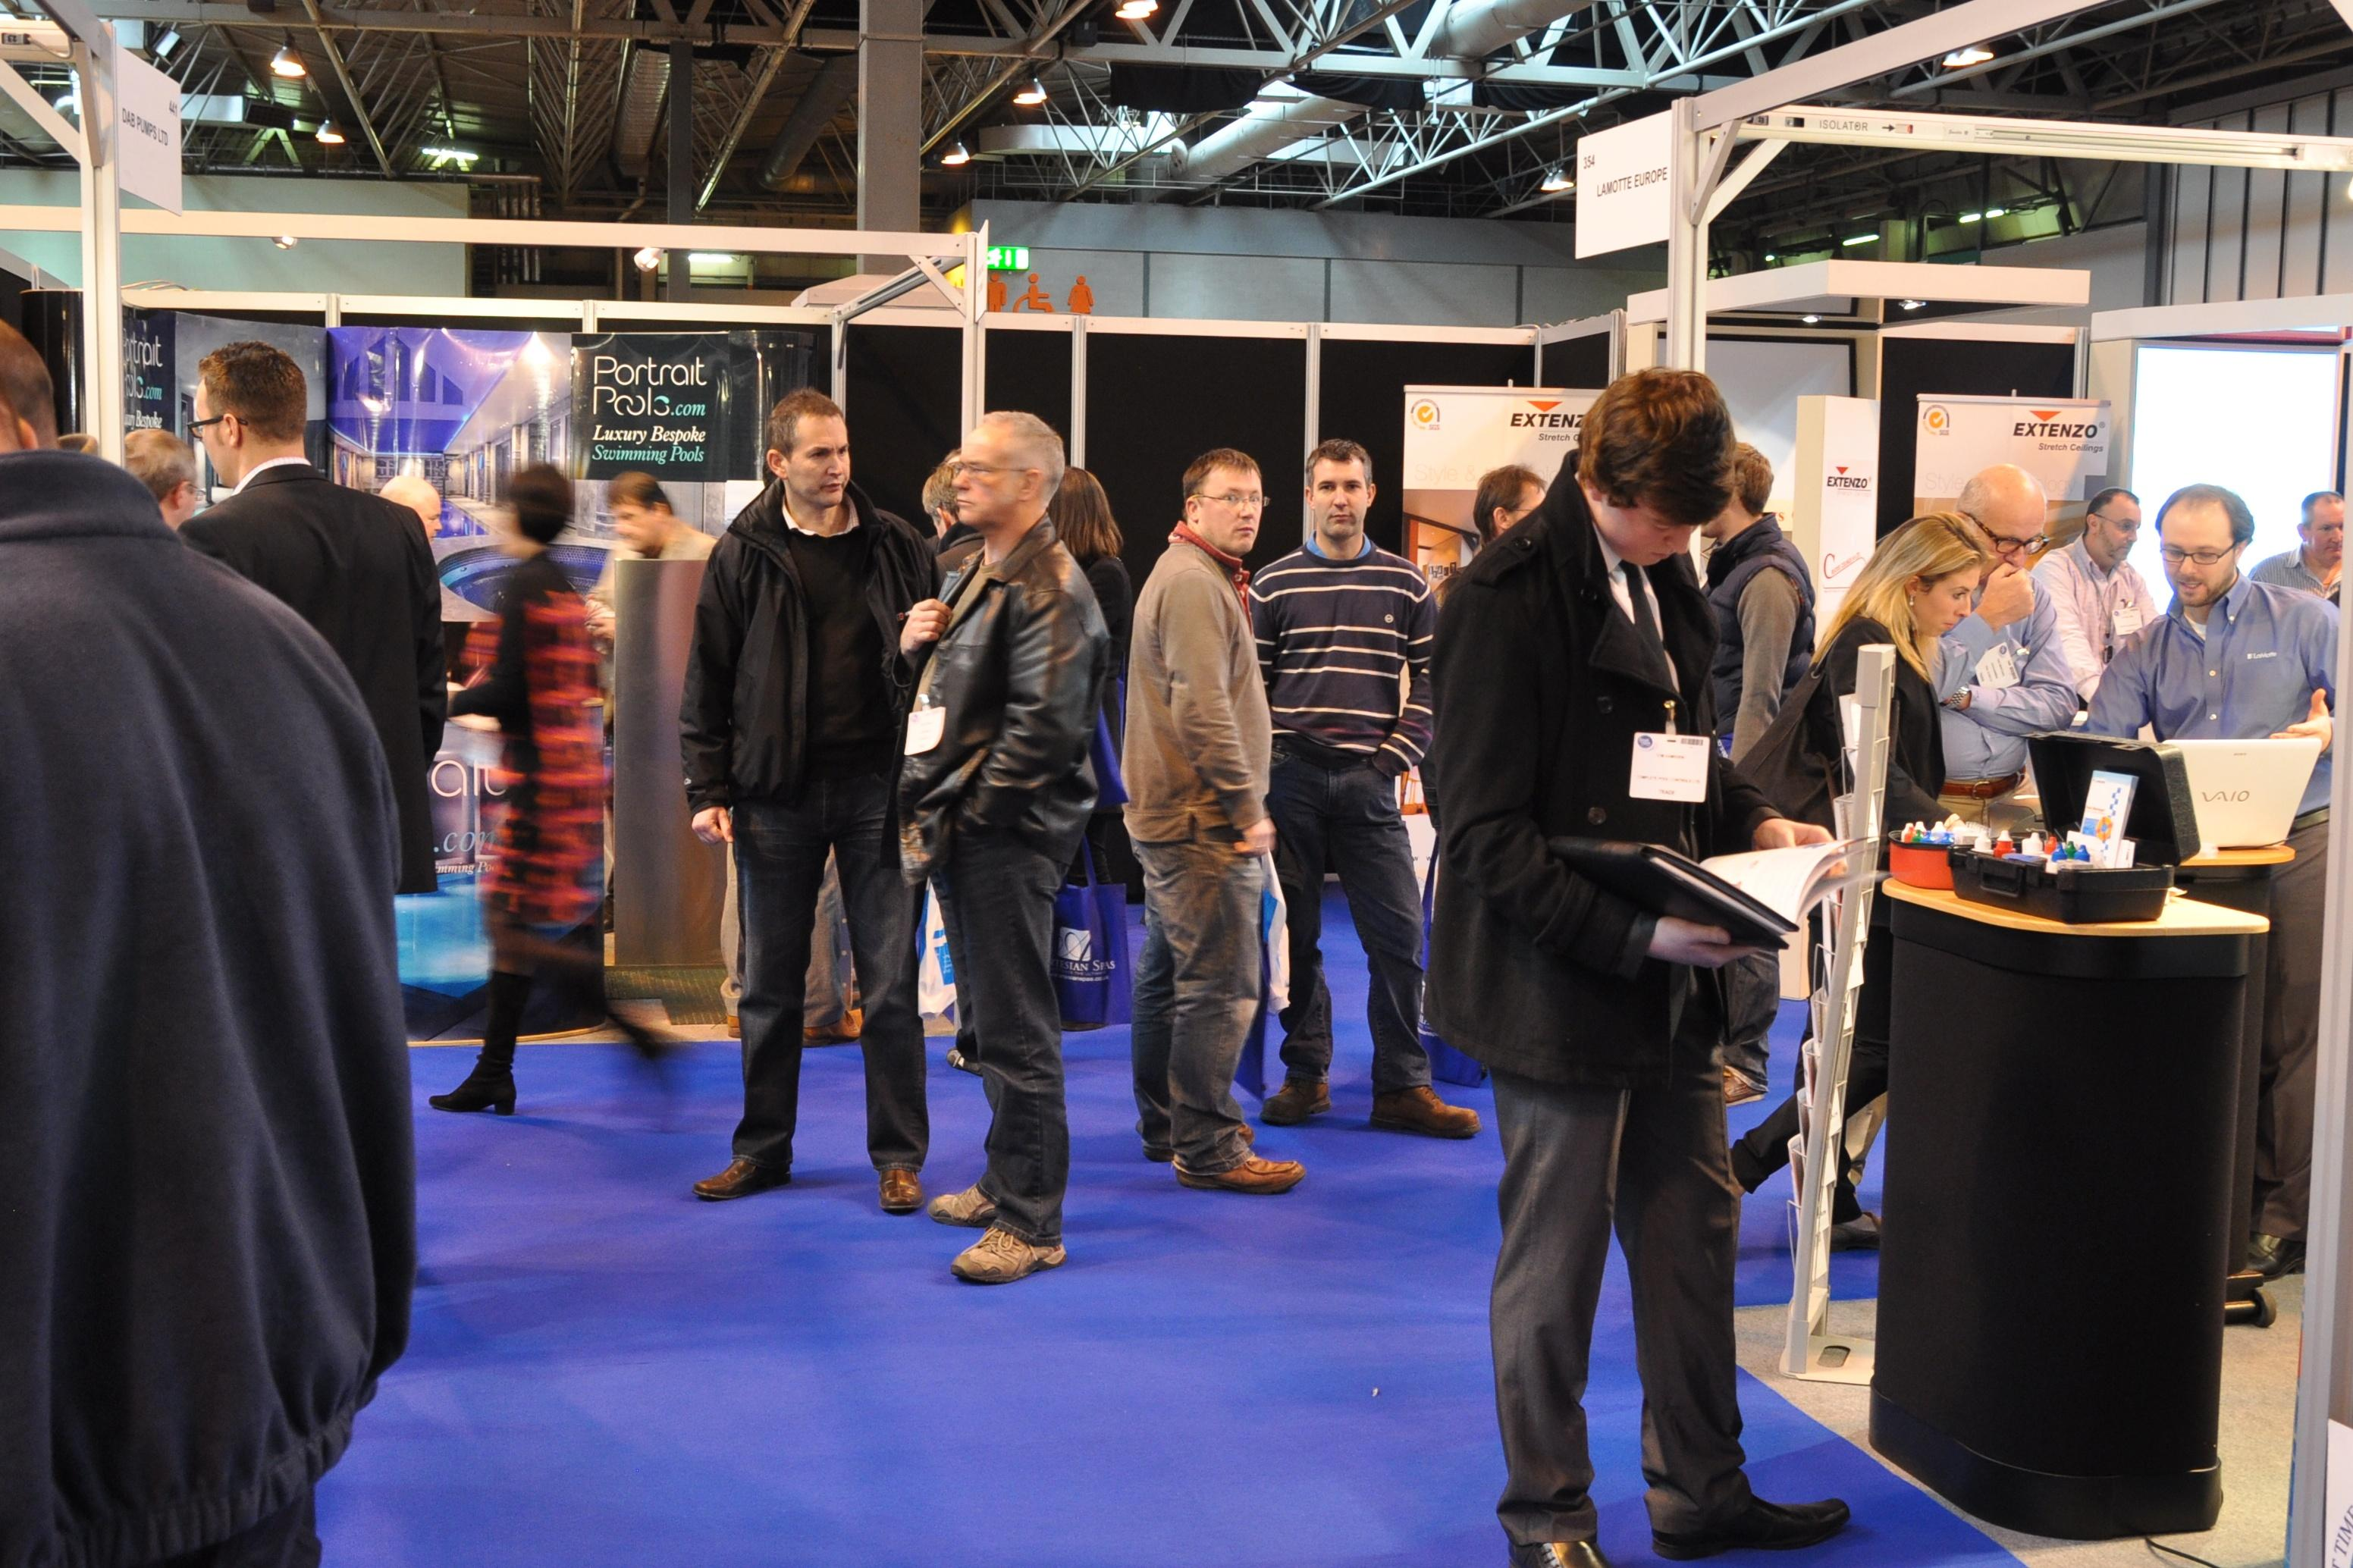 Major nspf coup for uk pool spa expo pool and spa scene for Pool expo show